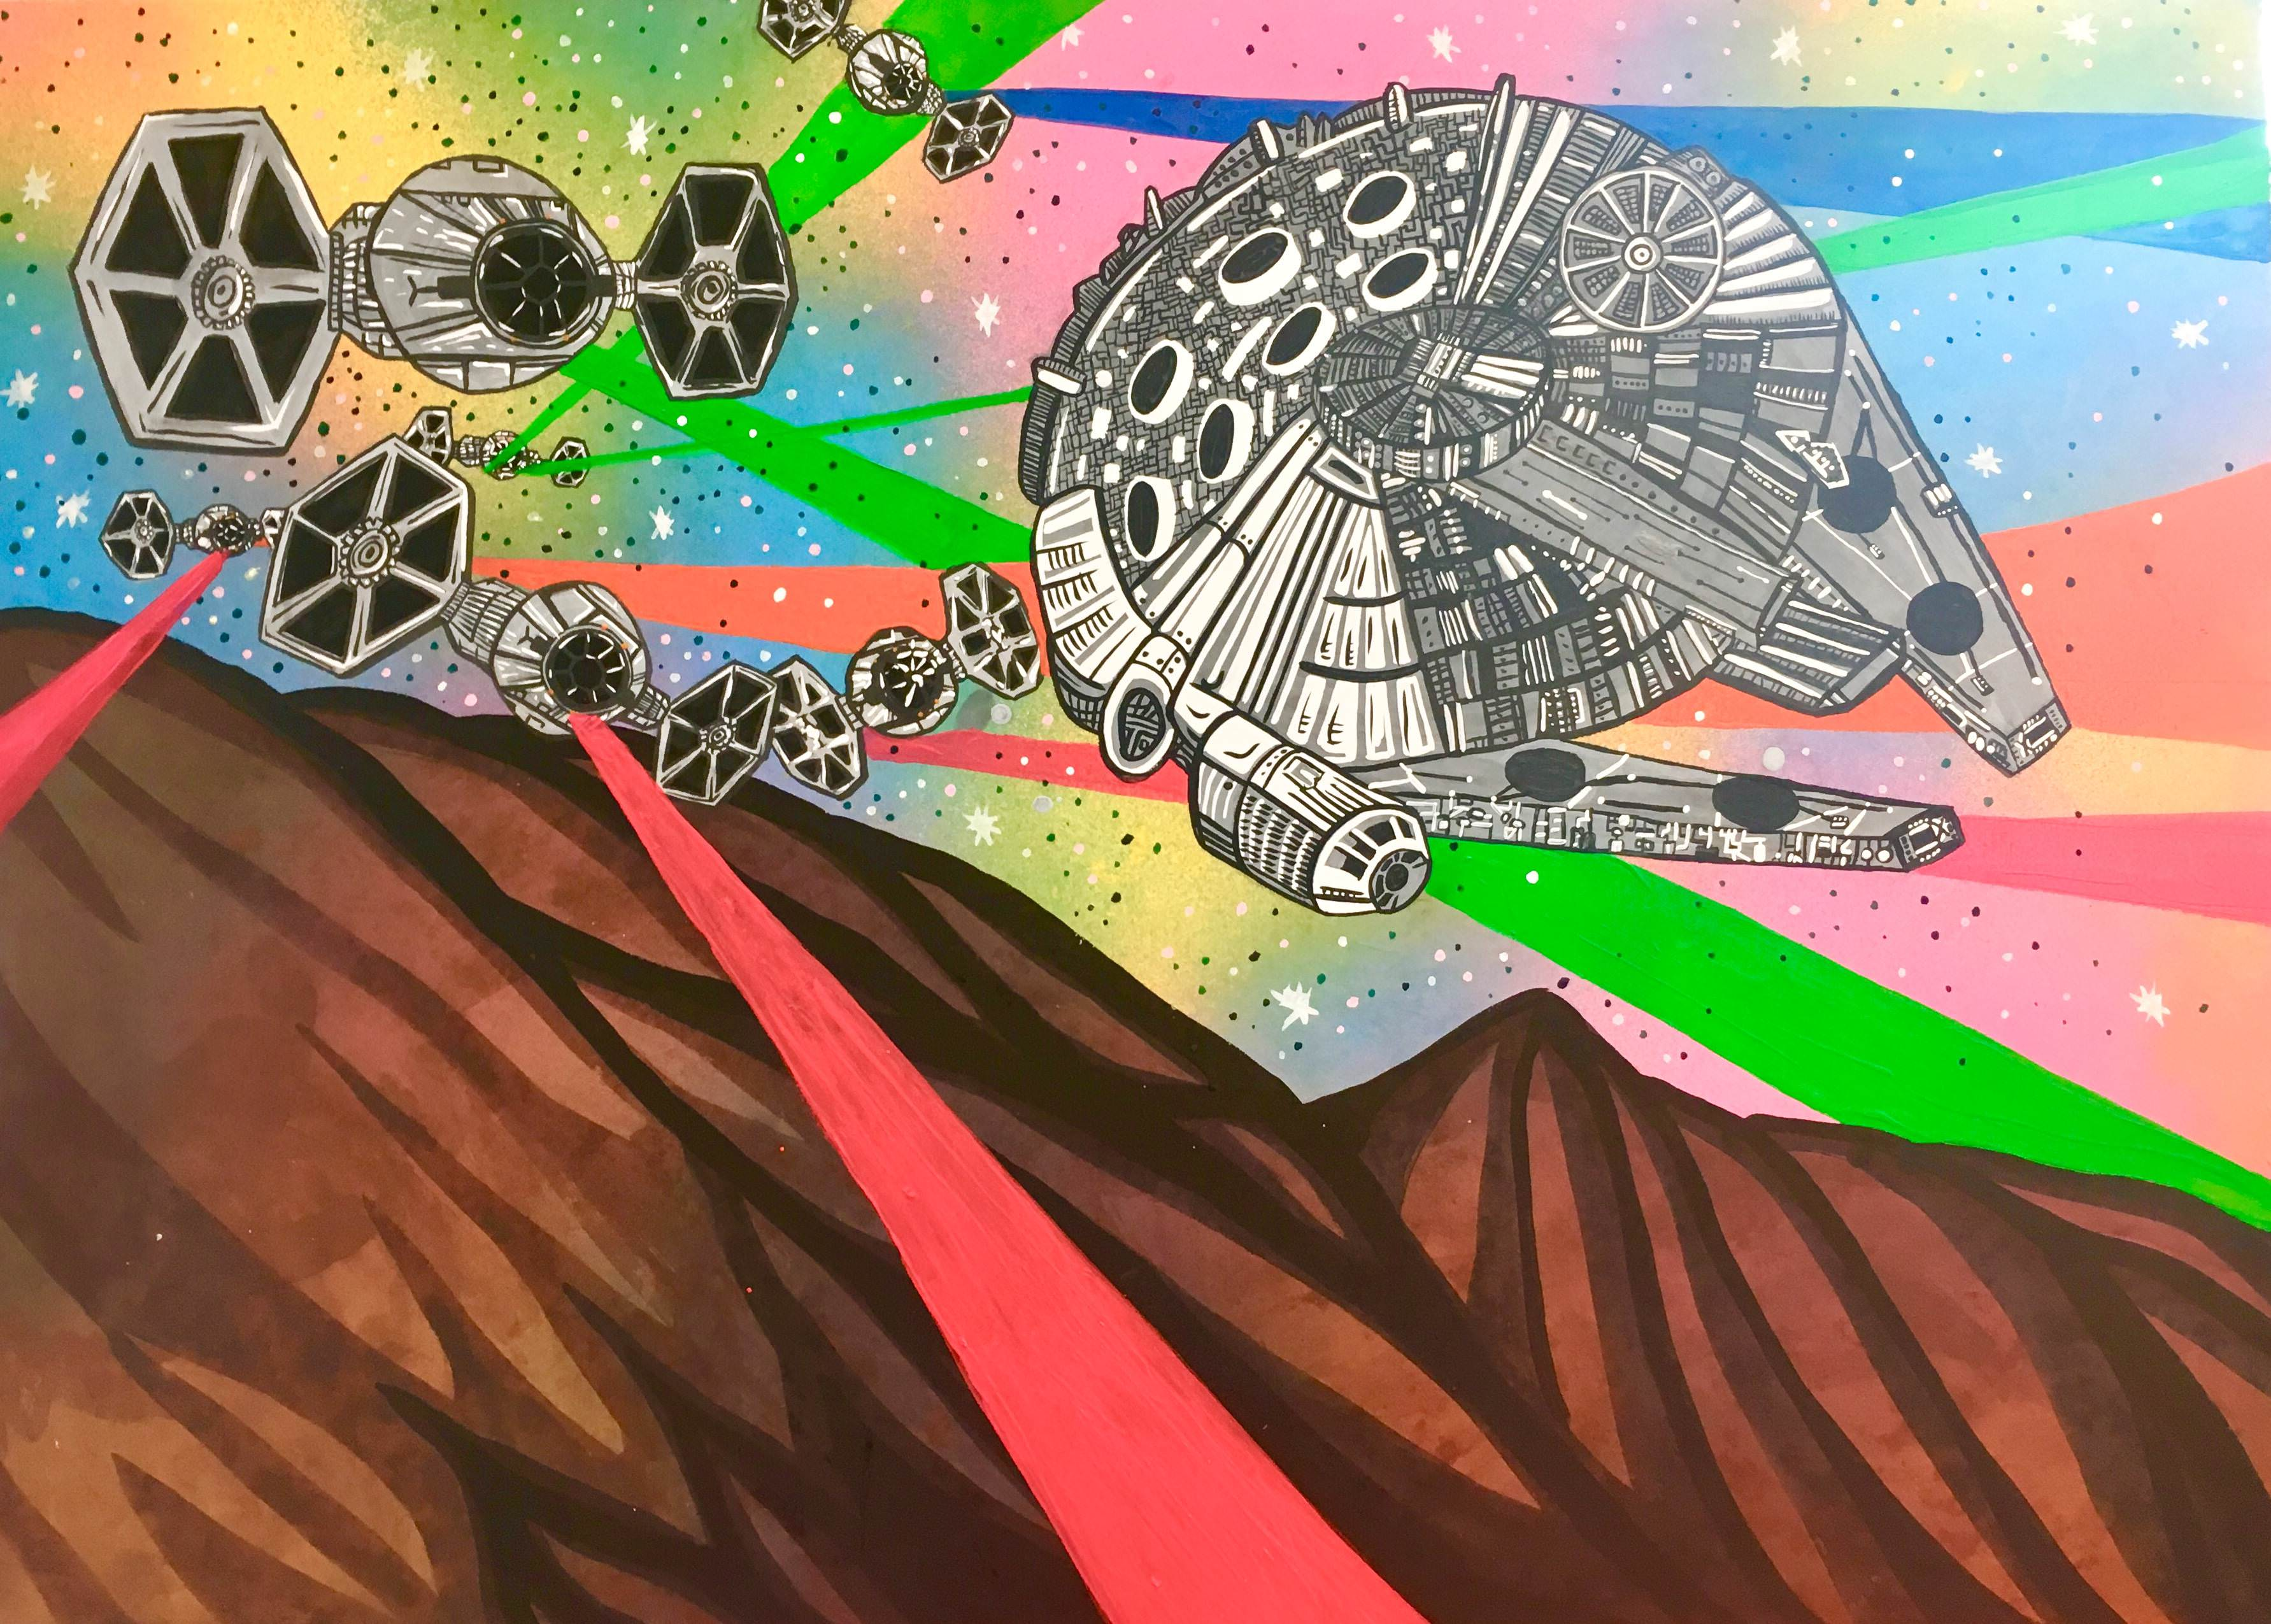 11 year old art student\'s tribute to Star Wars!